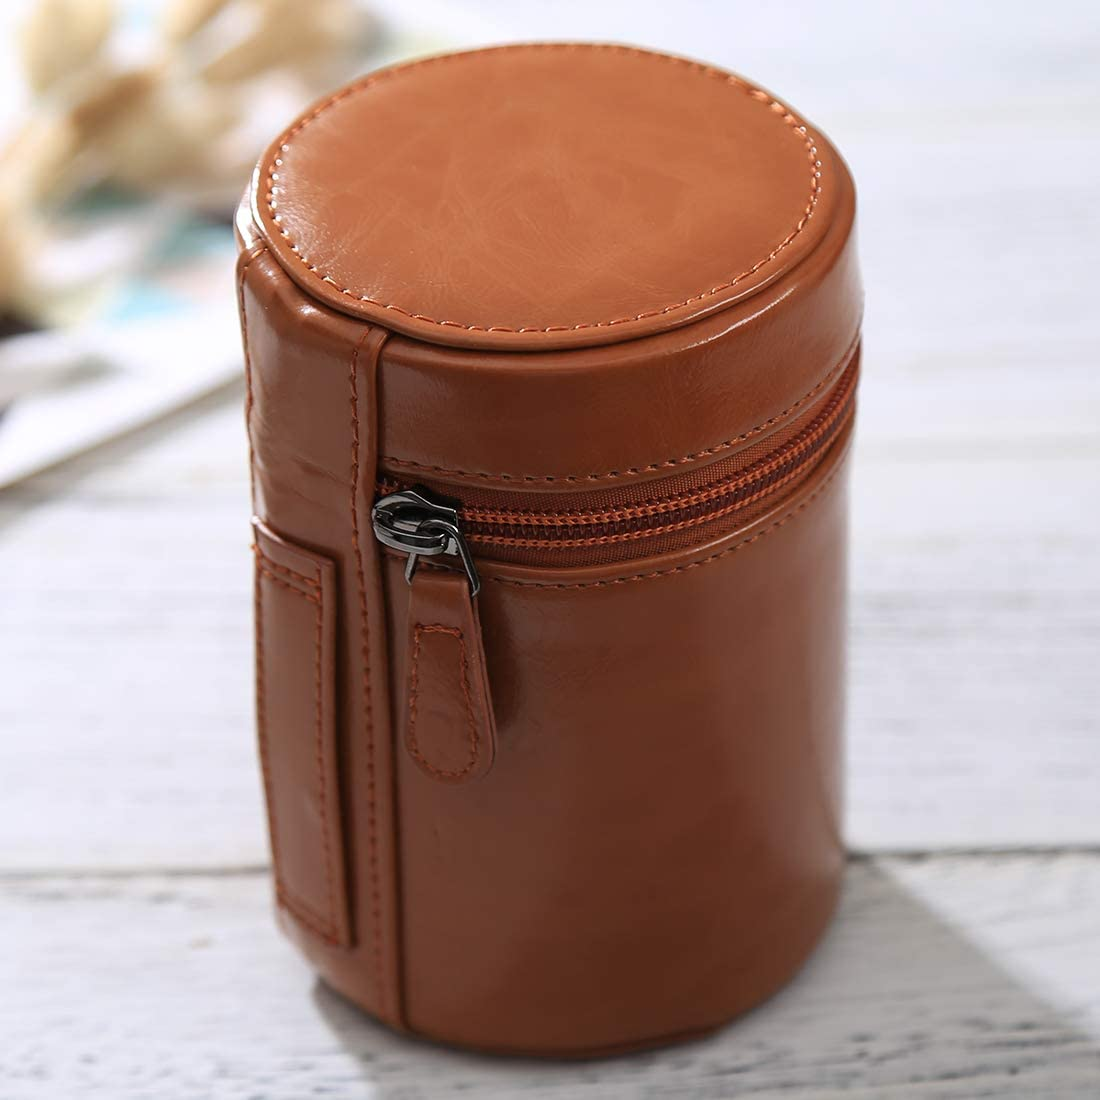 Size Color : Coffee Medium Lens Case Zippered PU Leather Pouch Box for DSLR Camera Lens 13x9x9cm Reliable